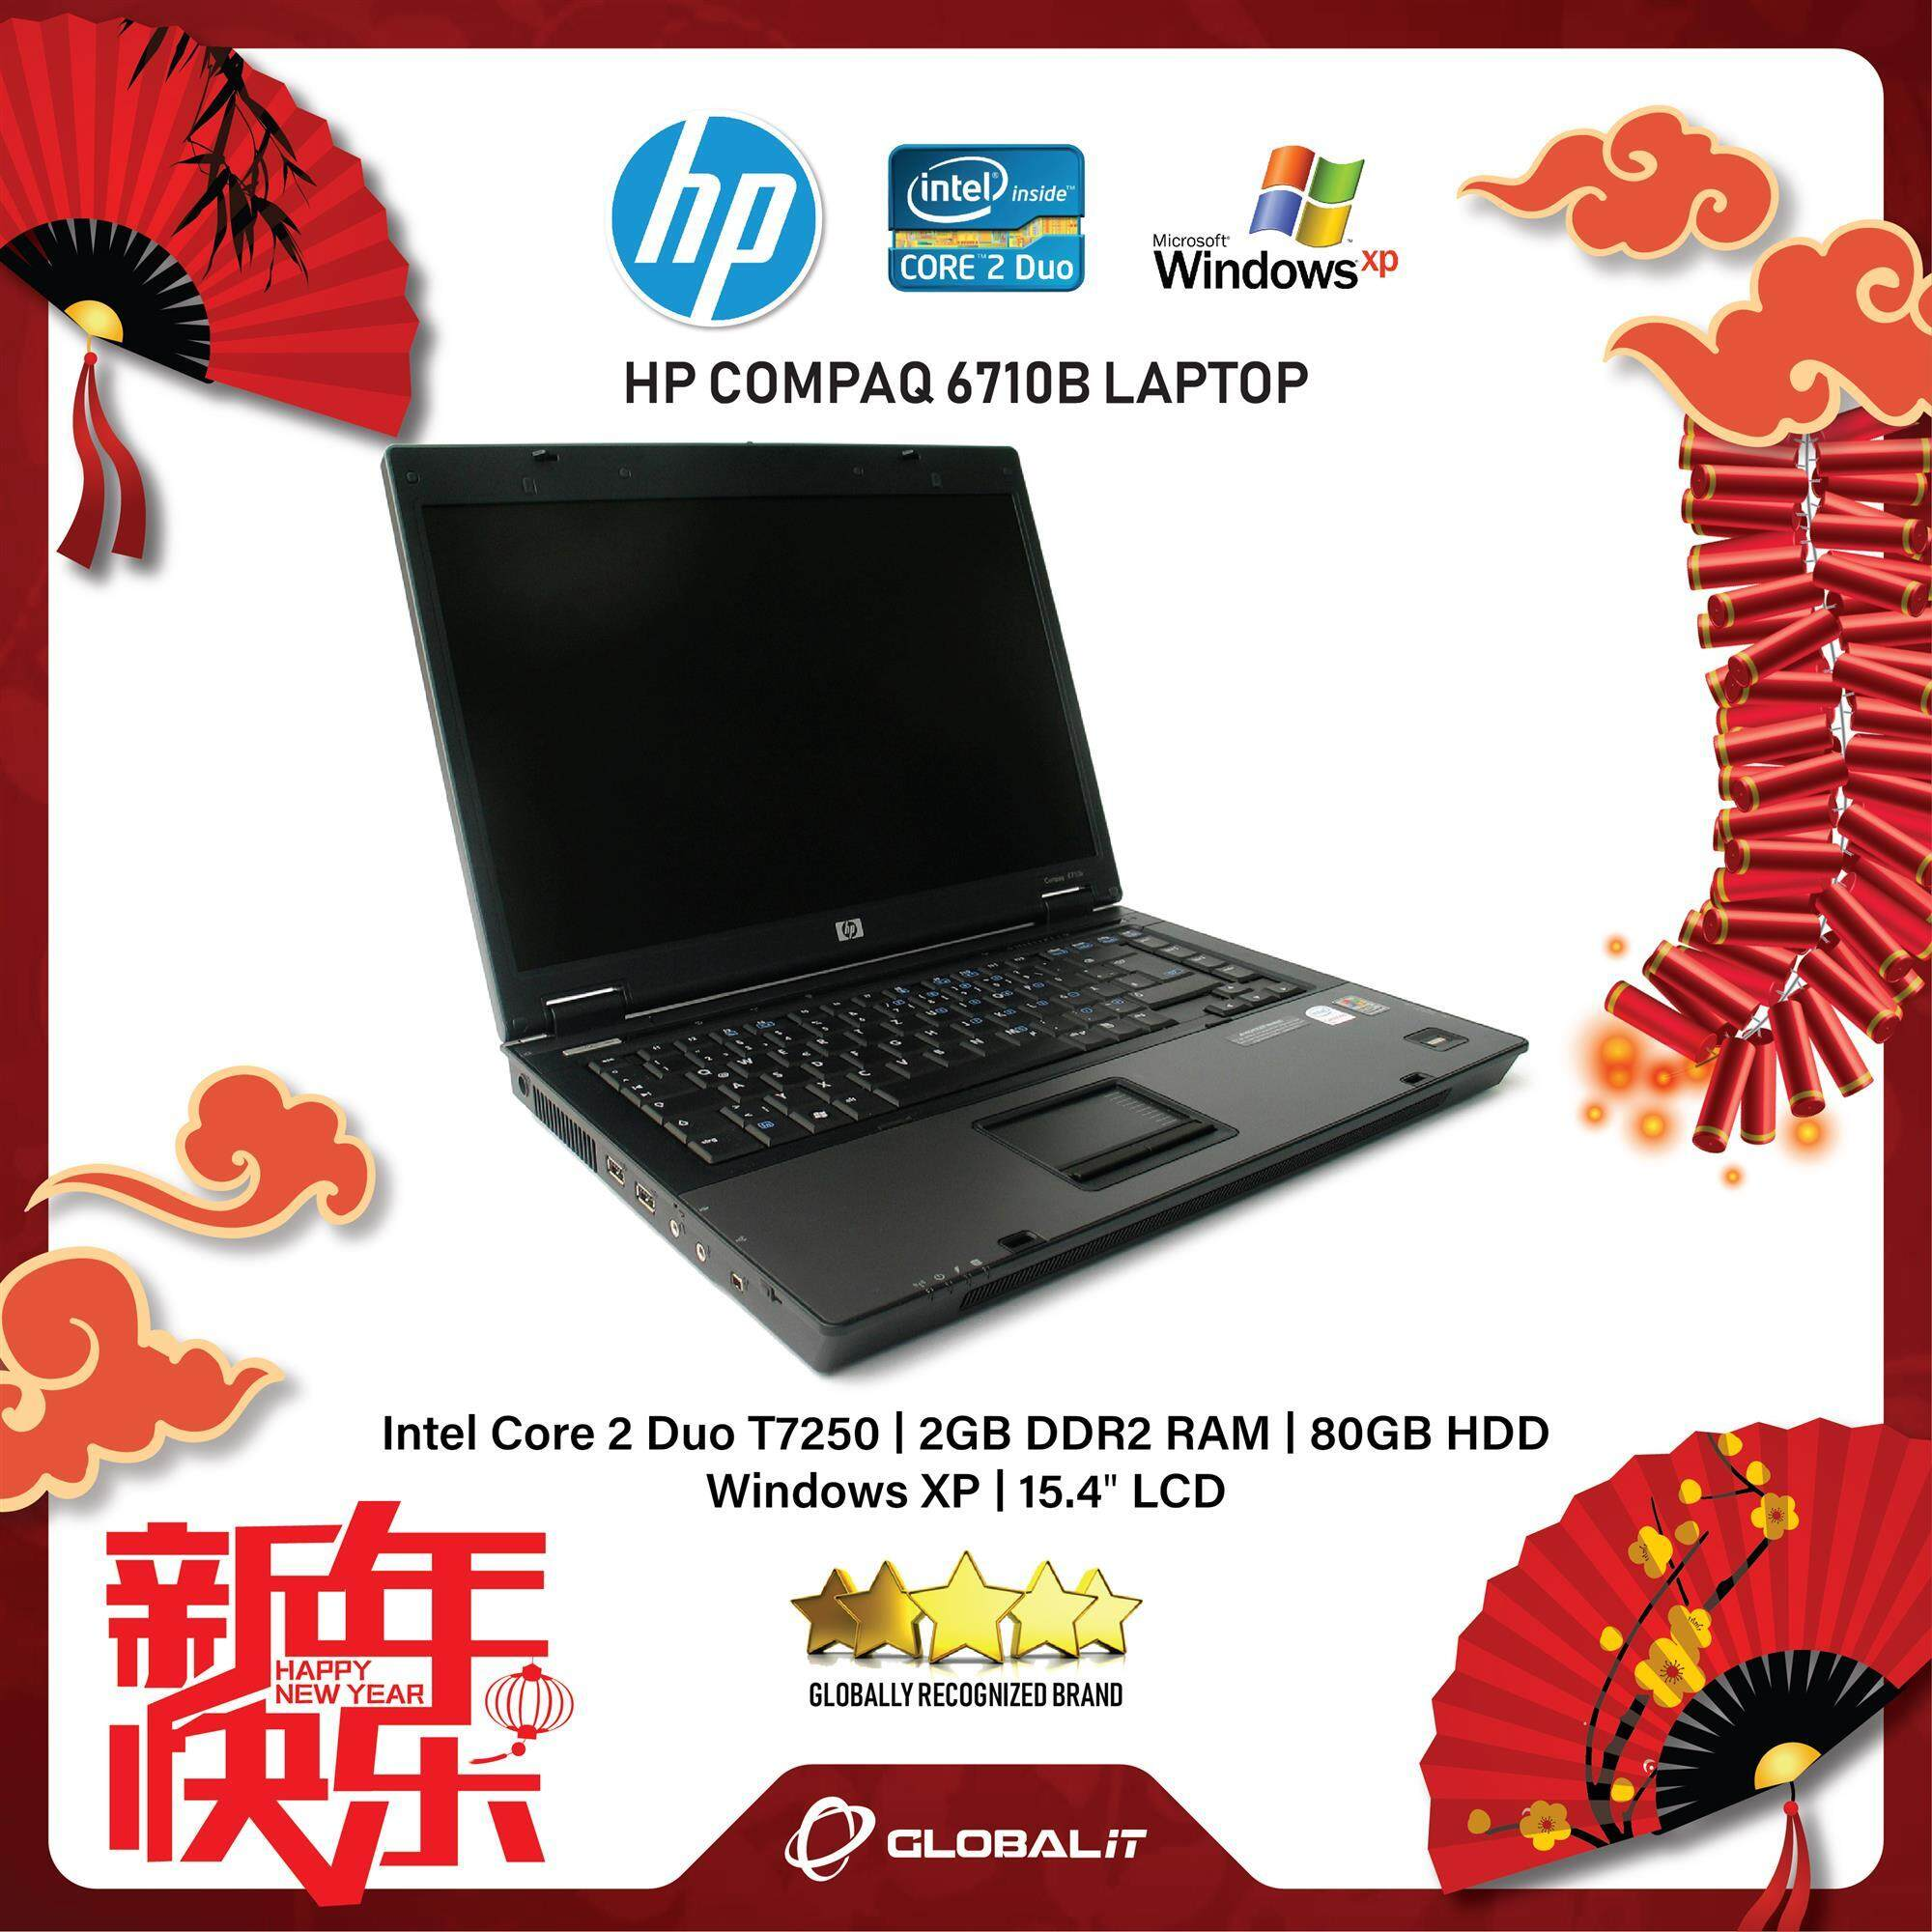 (Refurbished Notebook) HP Compaq 6710B Laptop / 15.4 inch LCD / Intel Core 2 Duo / 2GB Ram / 80GB HDD / WiFi / Windows XP Malaysia